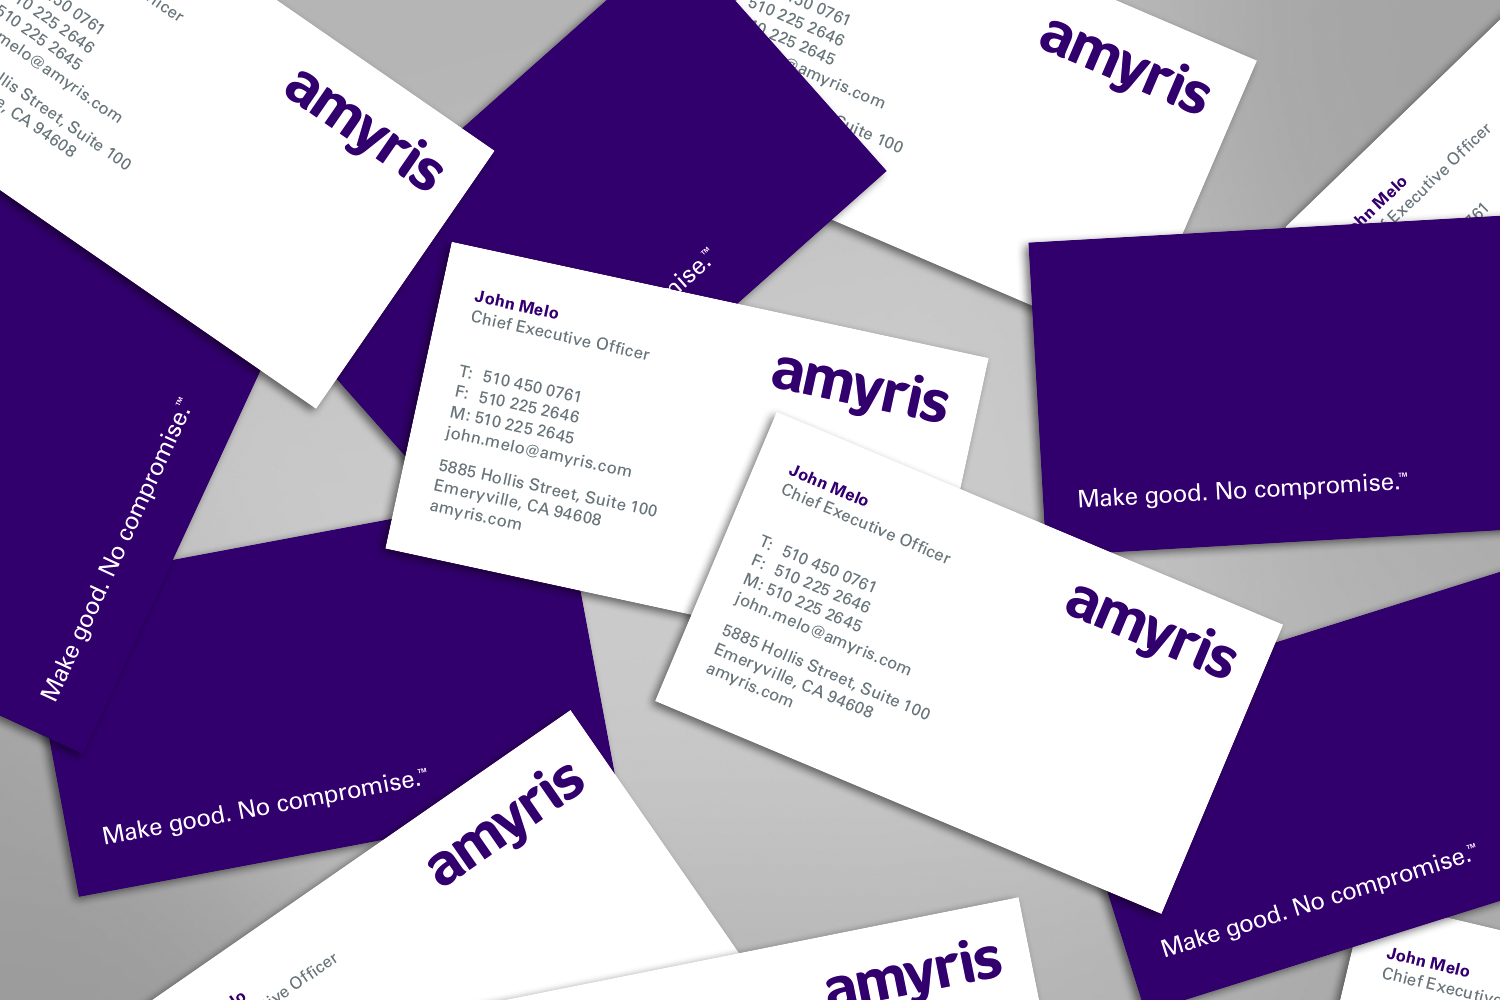 Amyris business cards